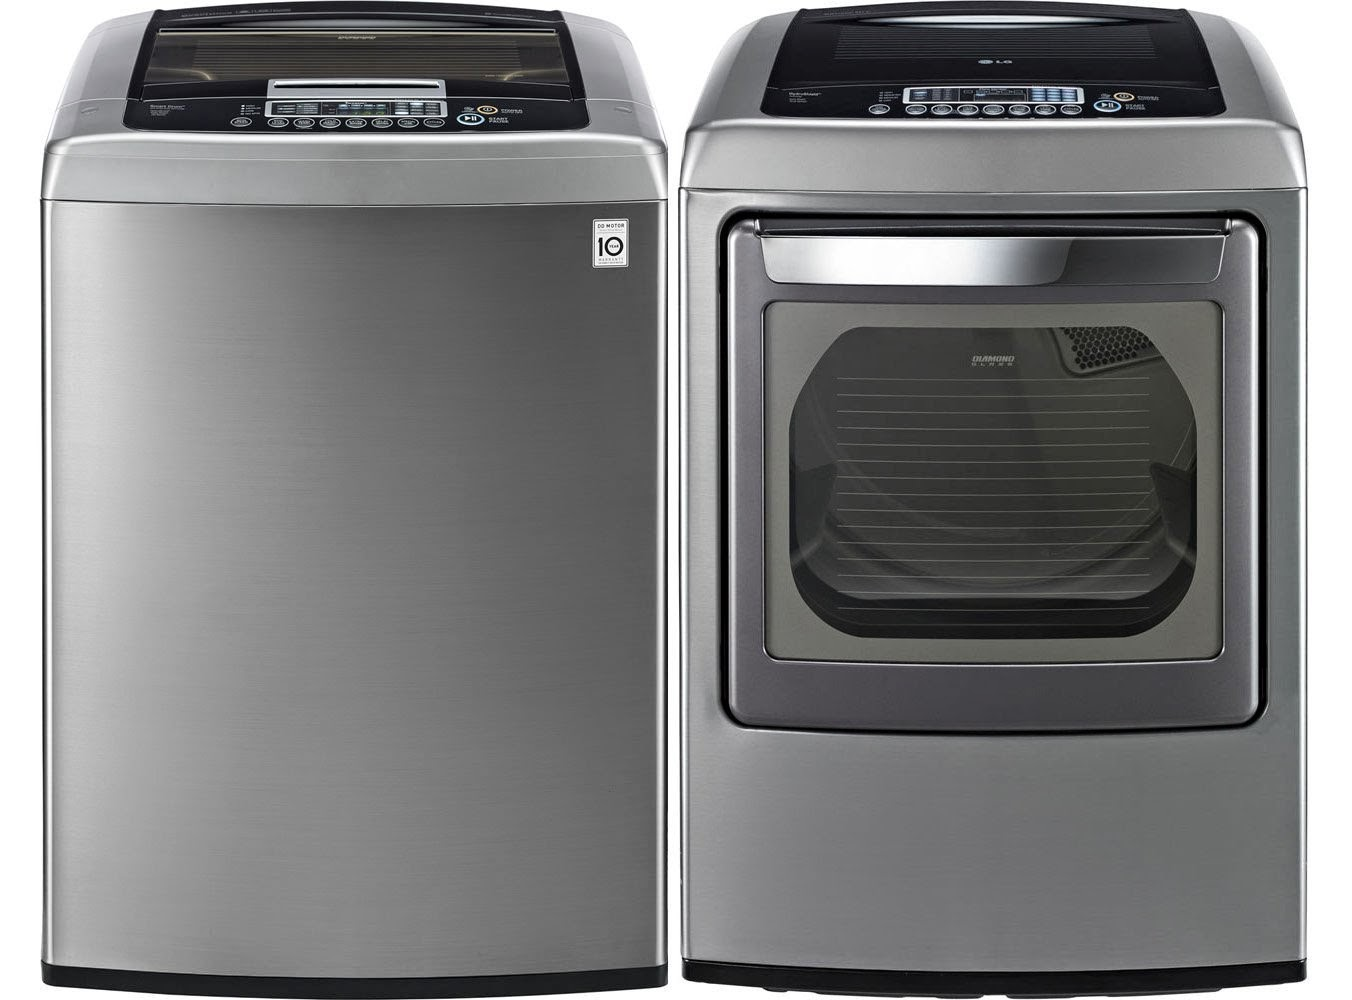 The best top load washer on the market - Lg Graphite 4 5 Cf Front Control Top Load Washer And 7 3 Cf Steam Electric Dryers